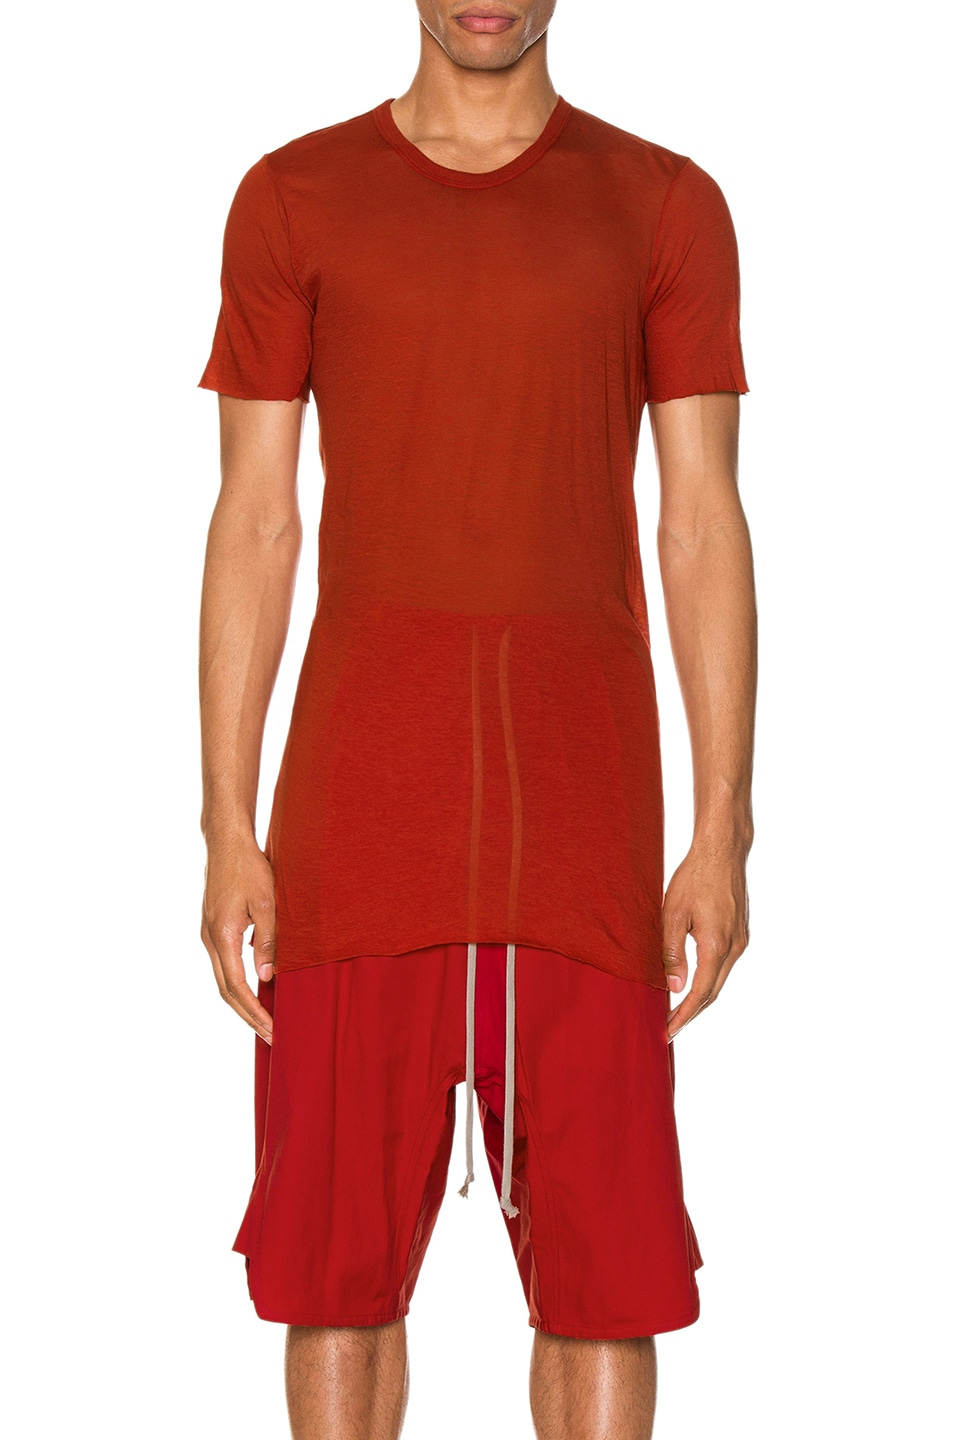 Image 1 of Rick Owens Basic Tee in Cardinal Red